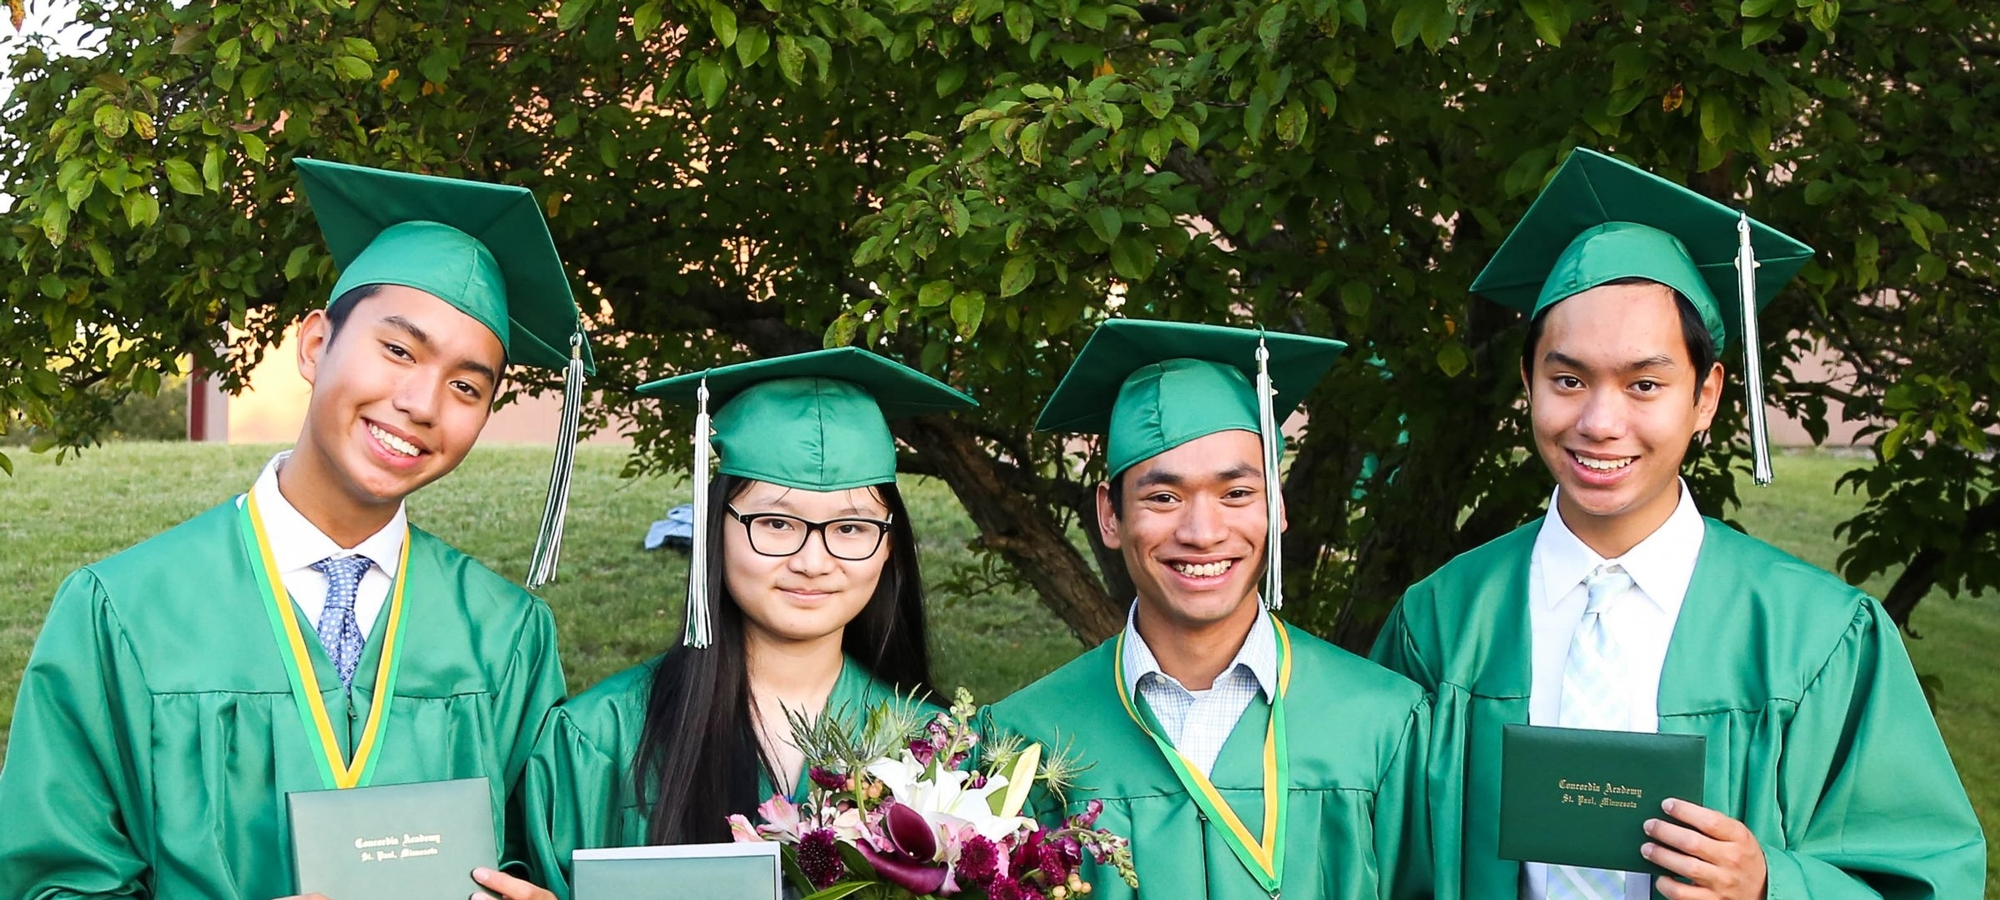 Four graduates in robes smile outdoors following graduation.